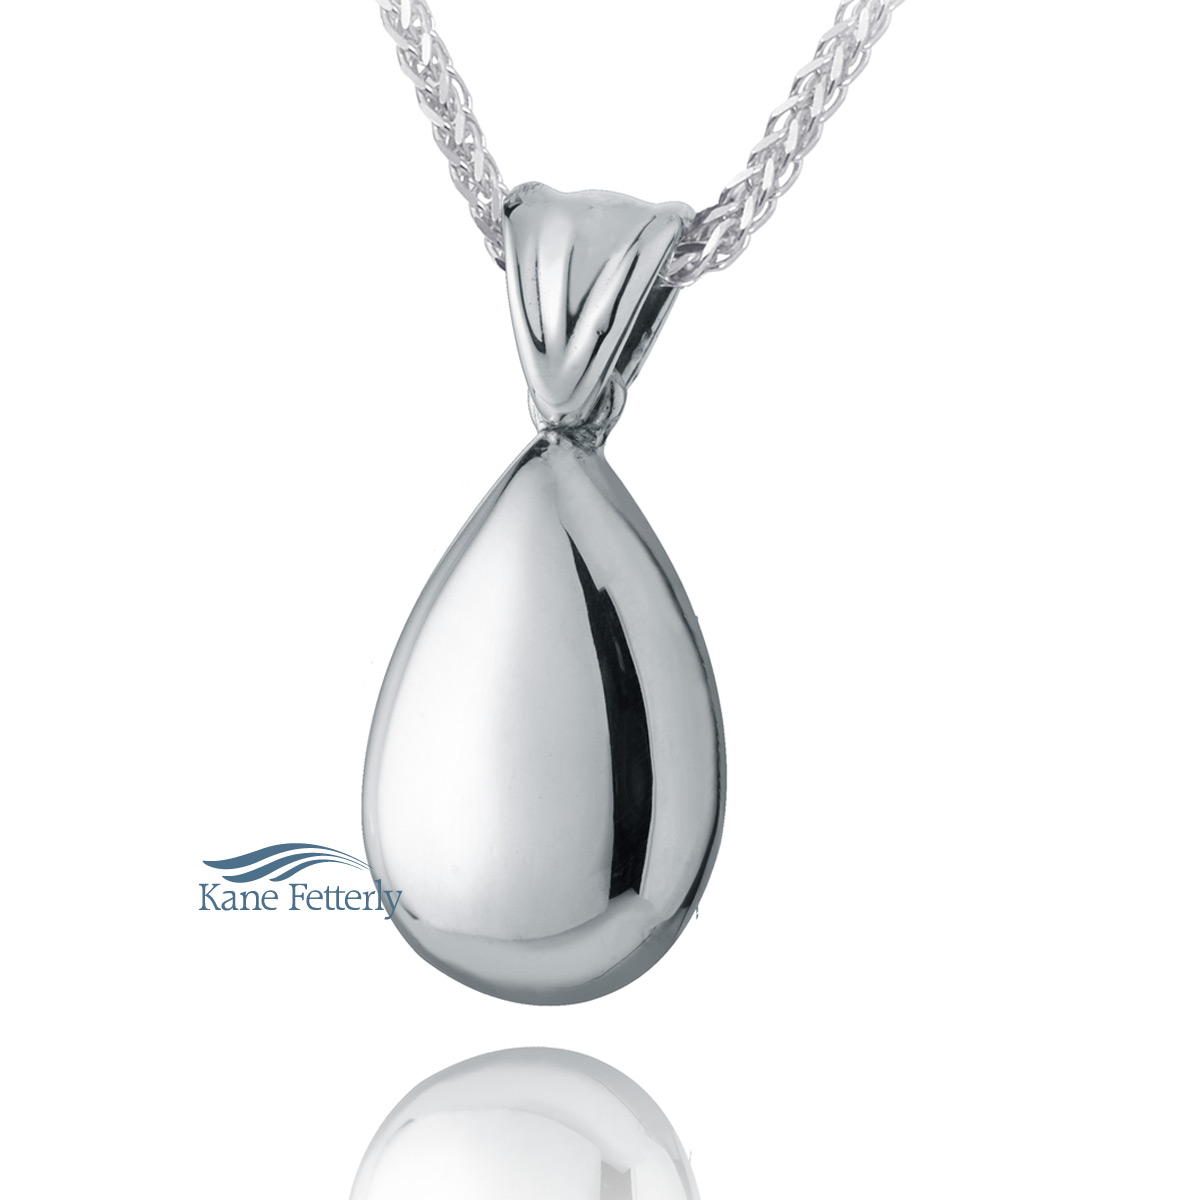 J0081 Teardrop pendant in sterling silver